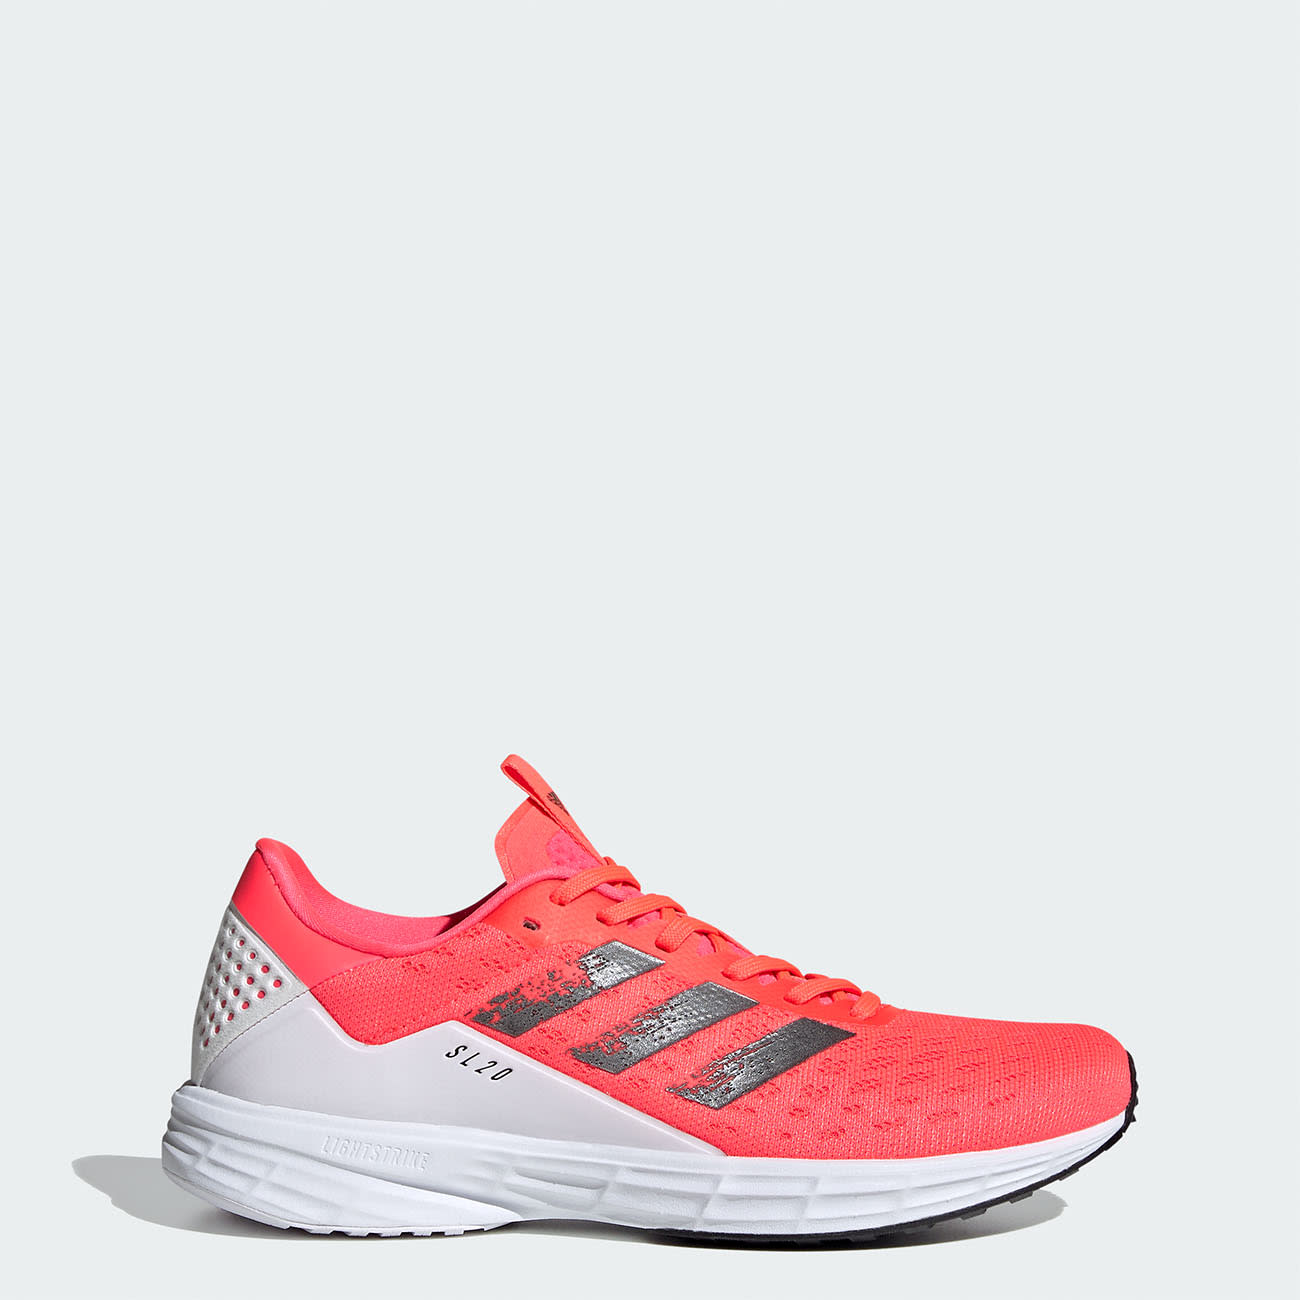 SEO-Gym-Shoes-Buying-Guide-Body-Image-7